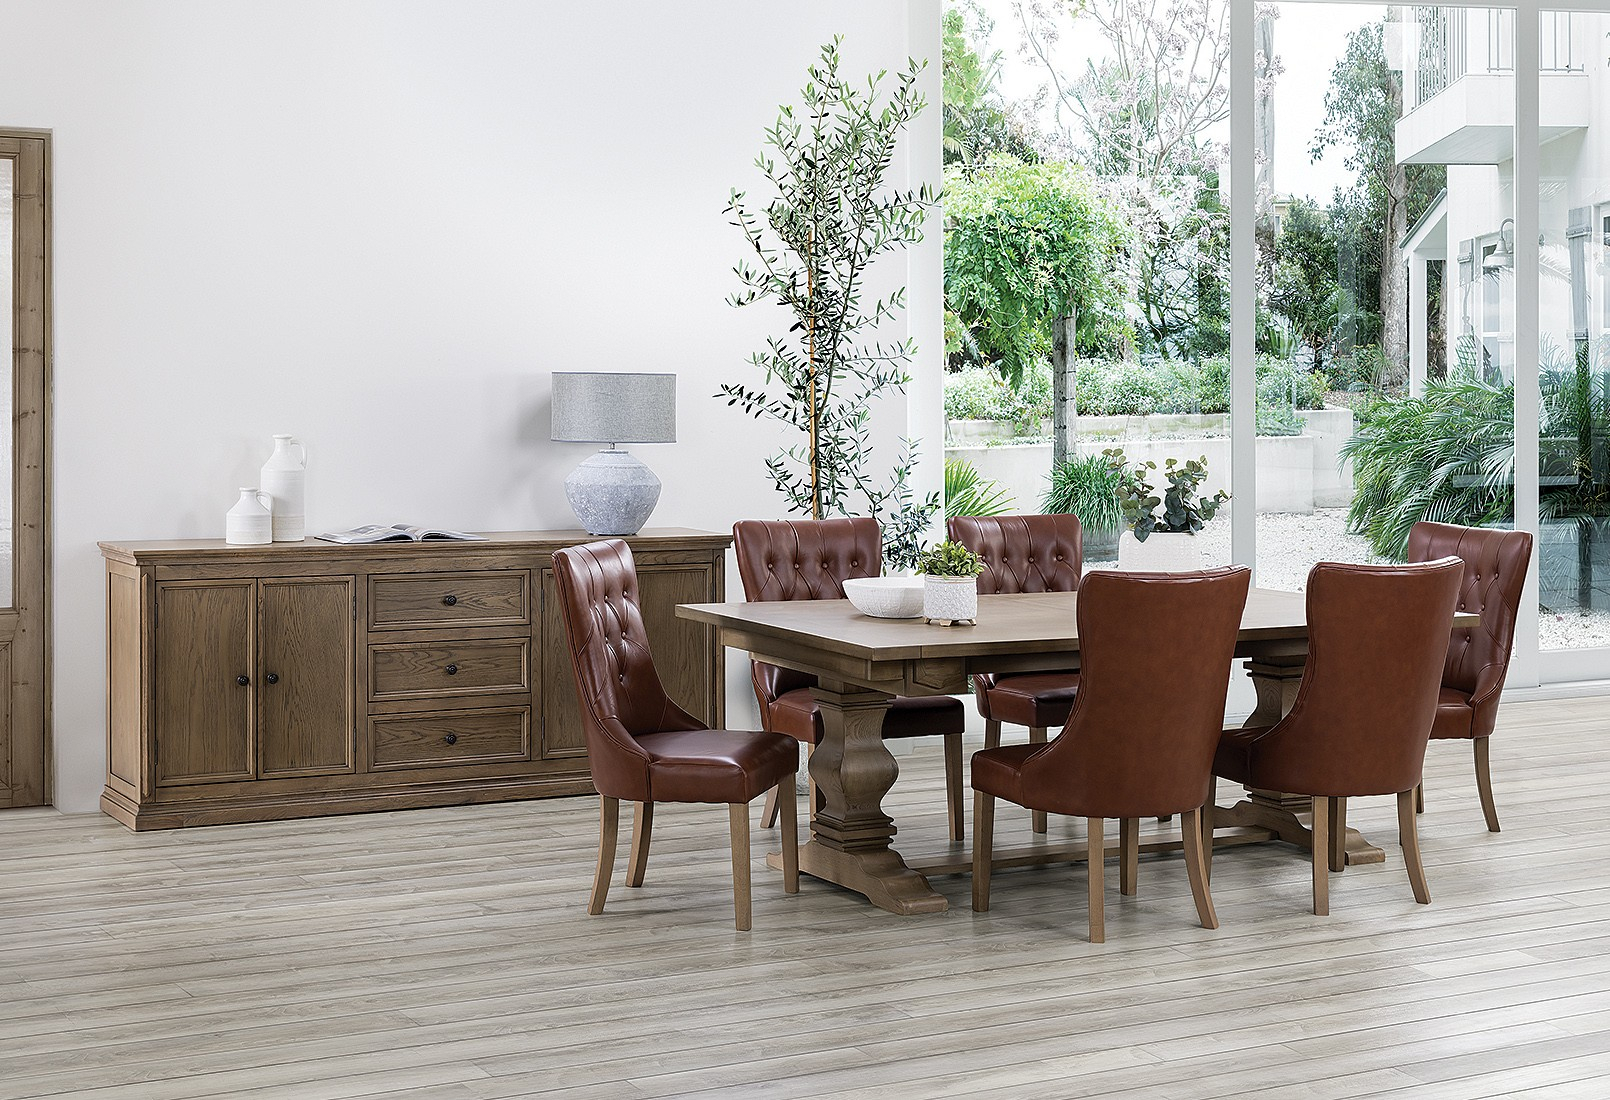 7 Piece Dining Sets | Amart Furniture Within Most Up To Date West Hill Family Table 3 Piece Dining Sets (Photo 16 of 20)